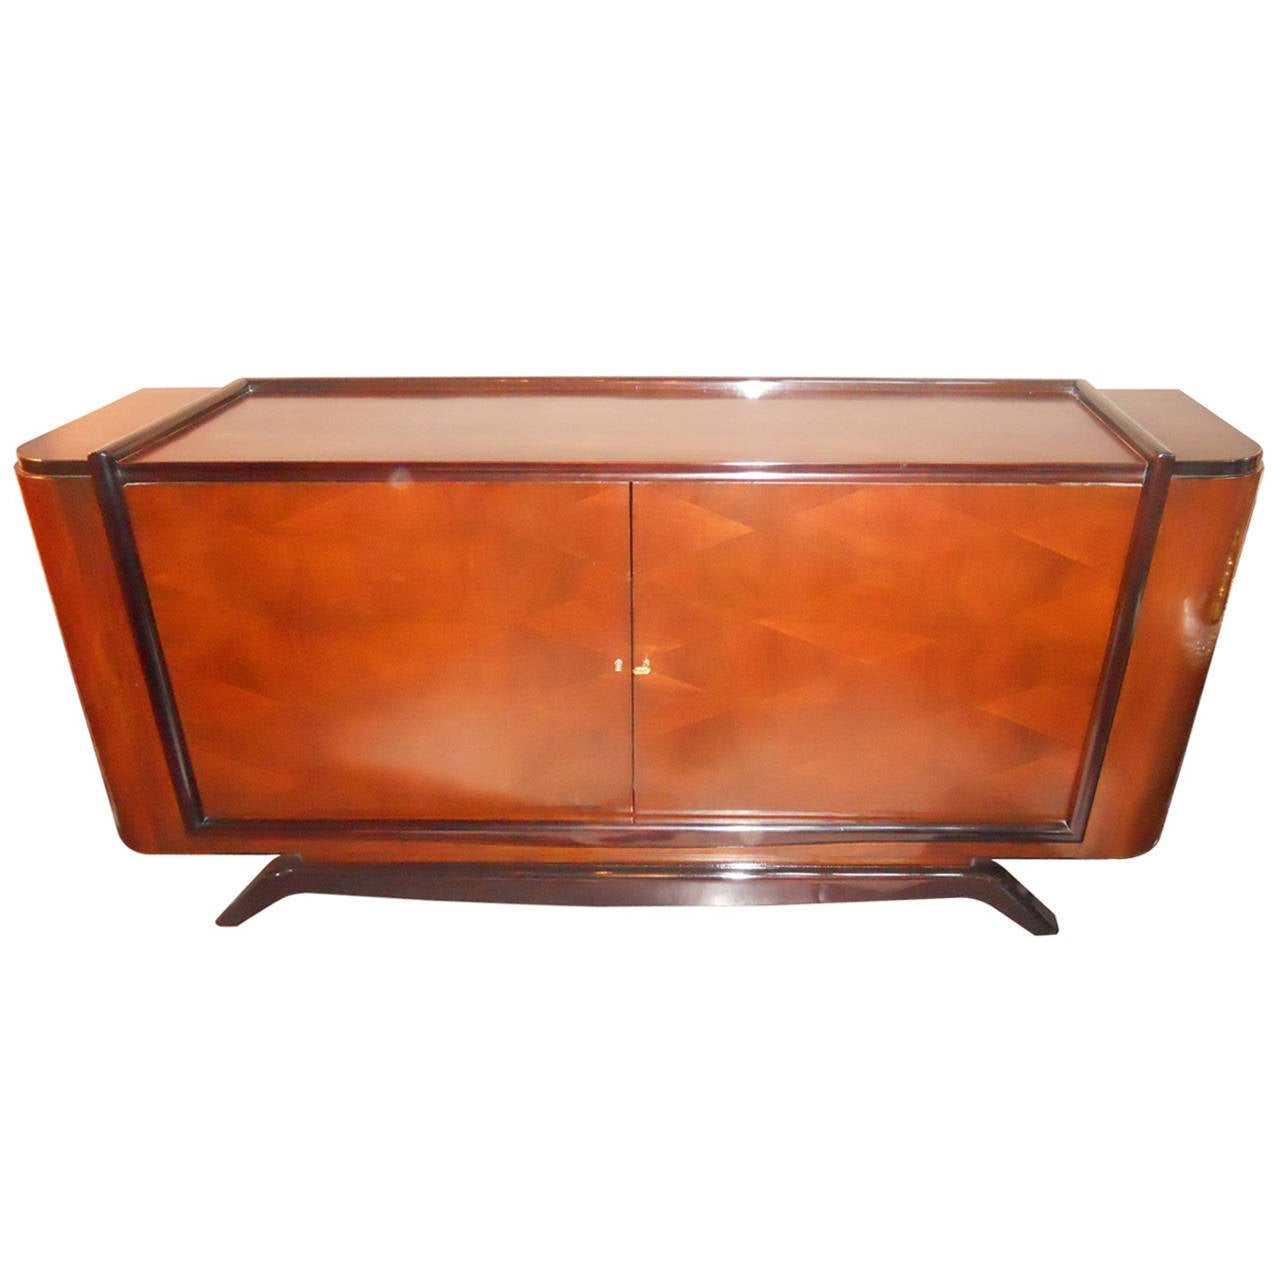 luxe deco credenza at 1stdibs. Black Bedroom Furniture Sets. Home Design Ideas